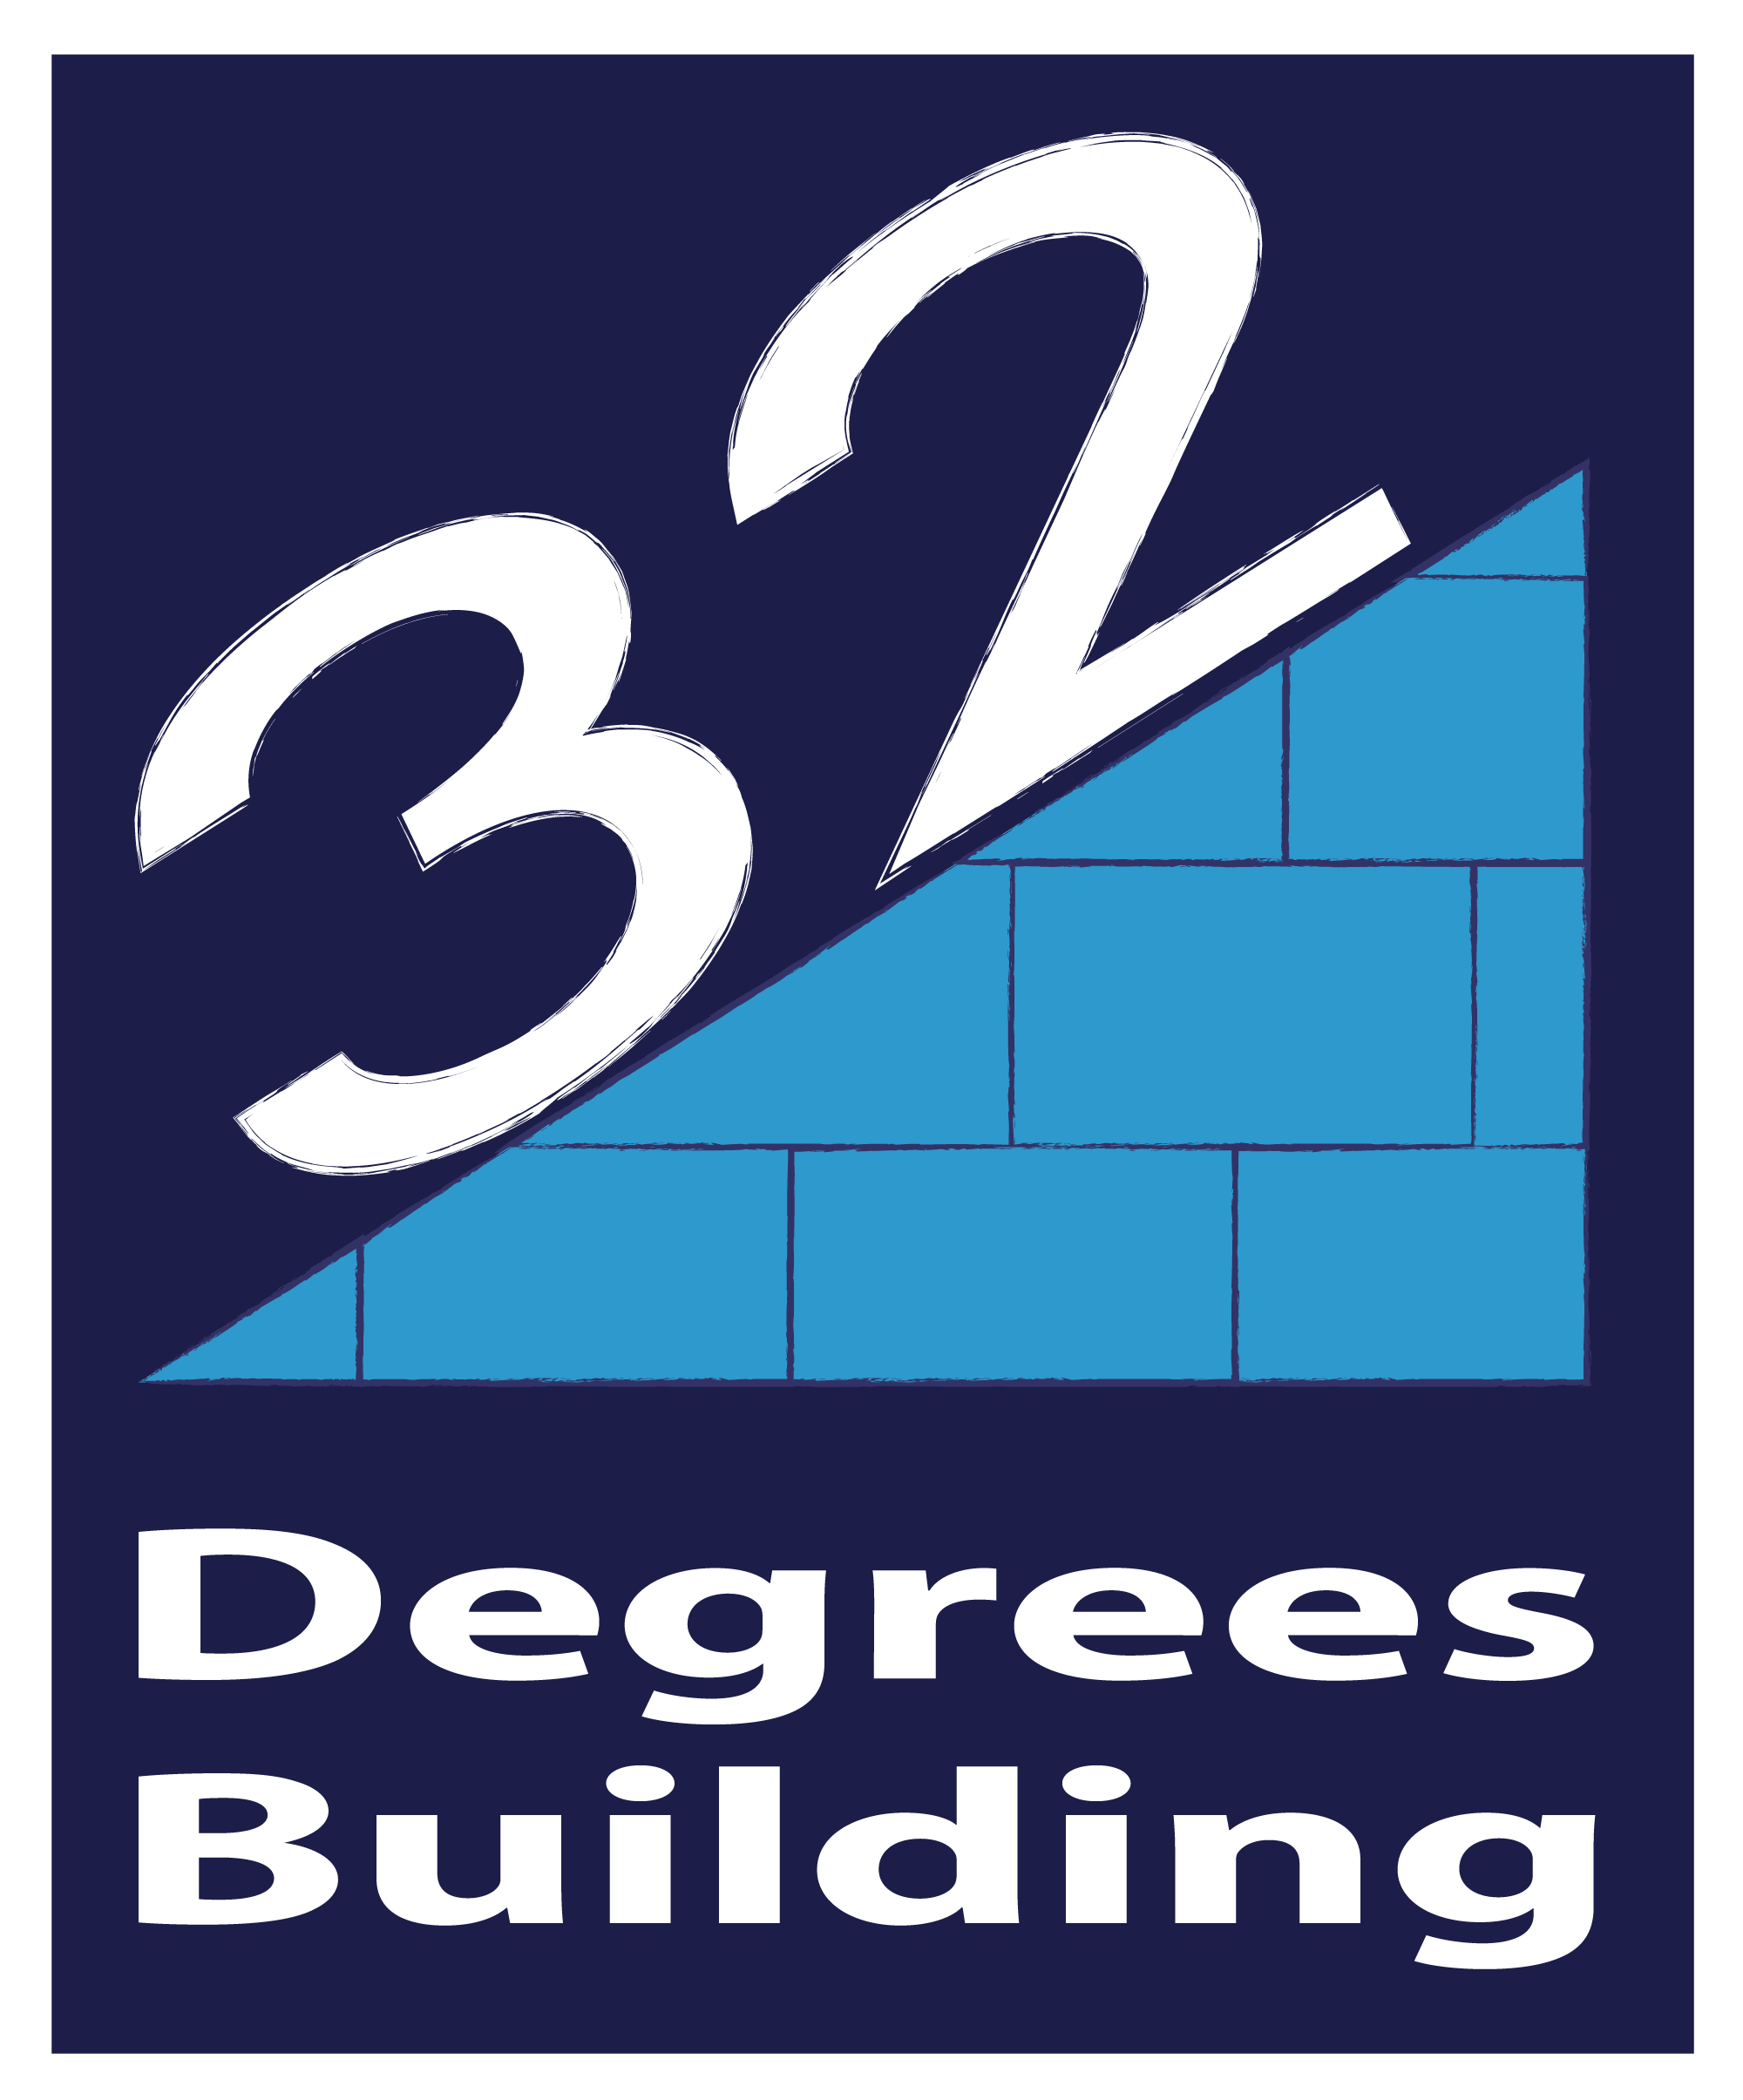 32 Degrees Building